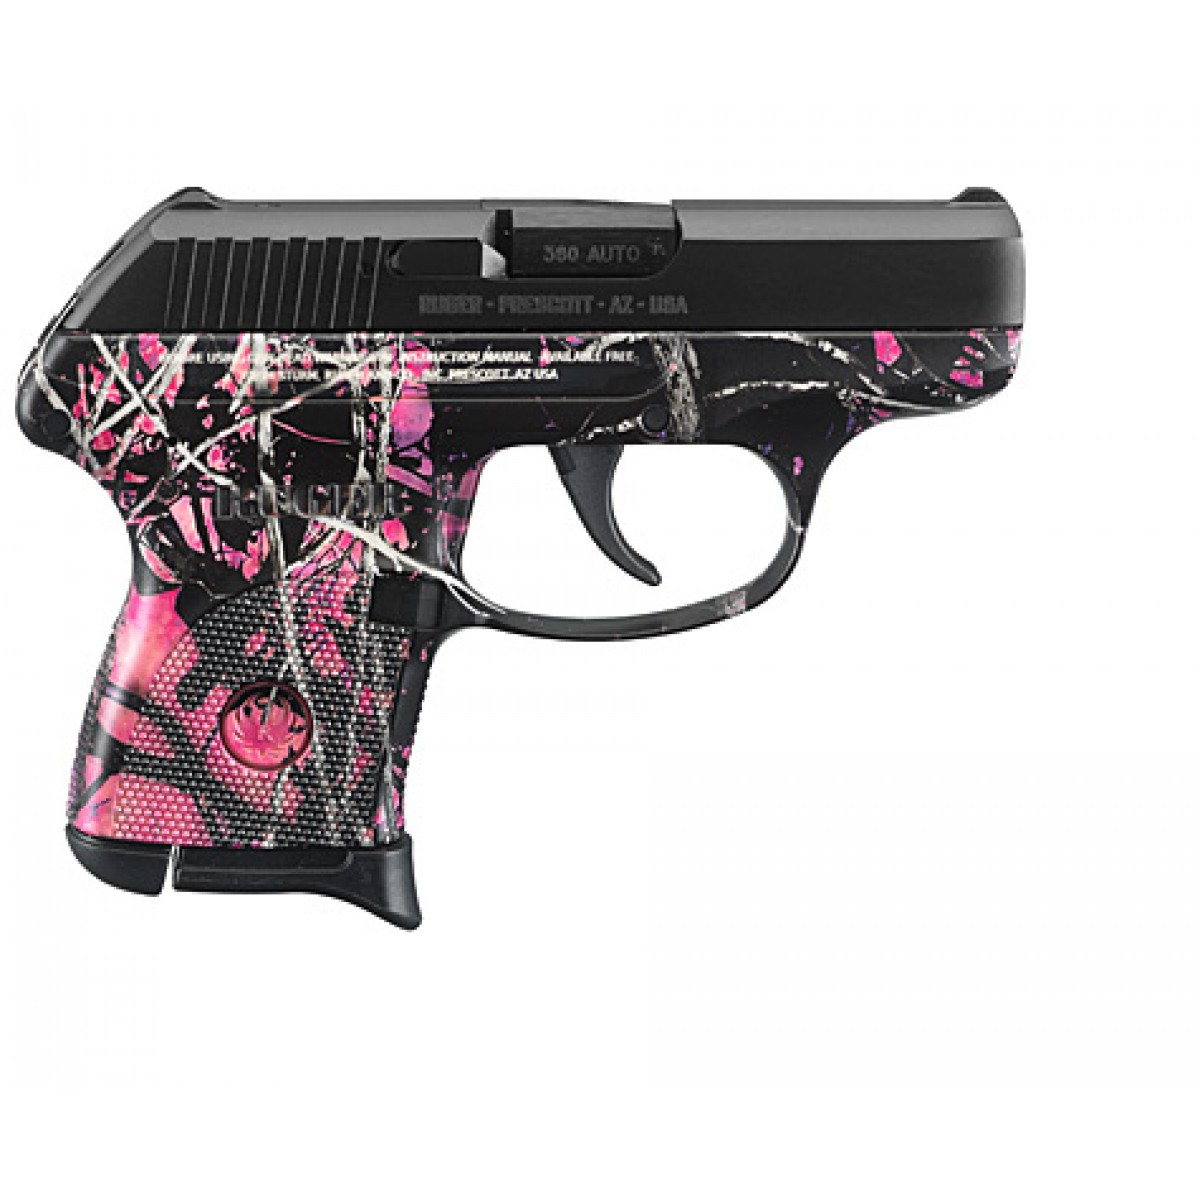 RUGER LCP-MG 380 PISTOL MUDDY GIRL CAMO Red Ryder Armory